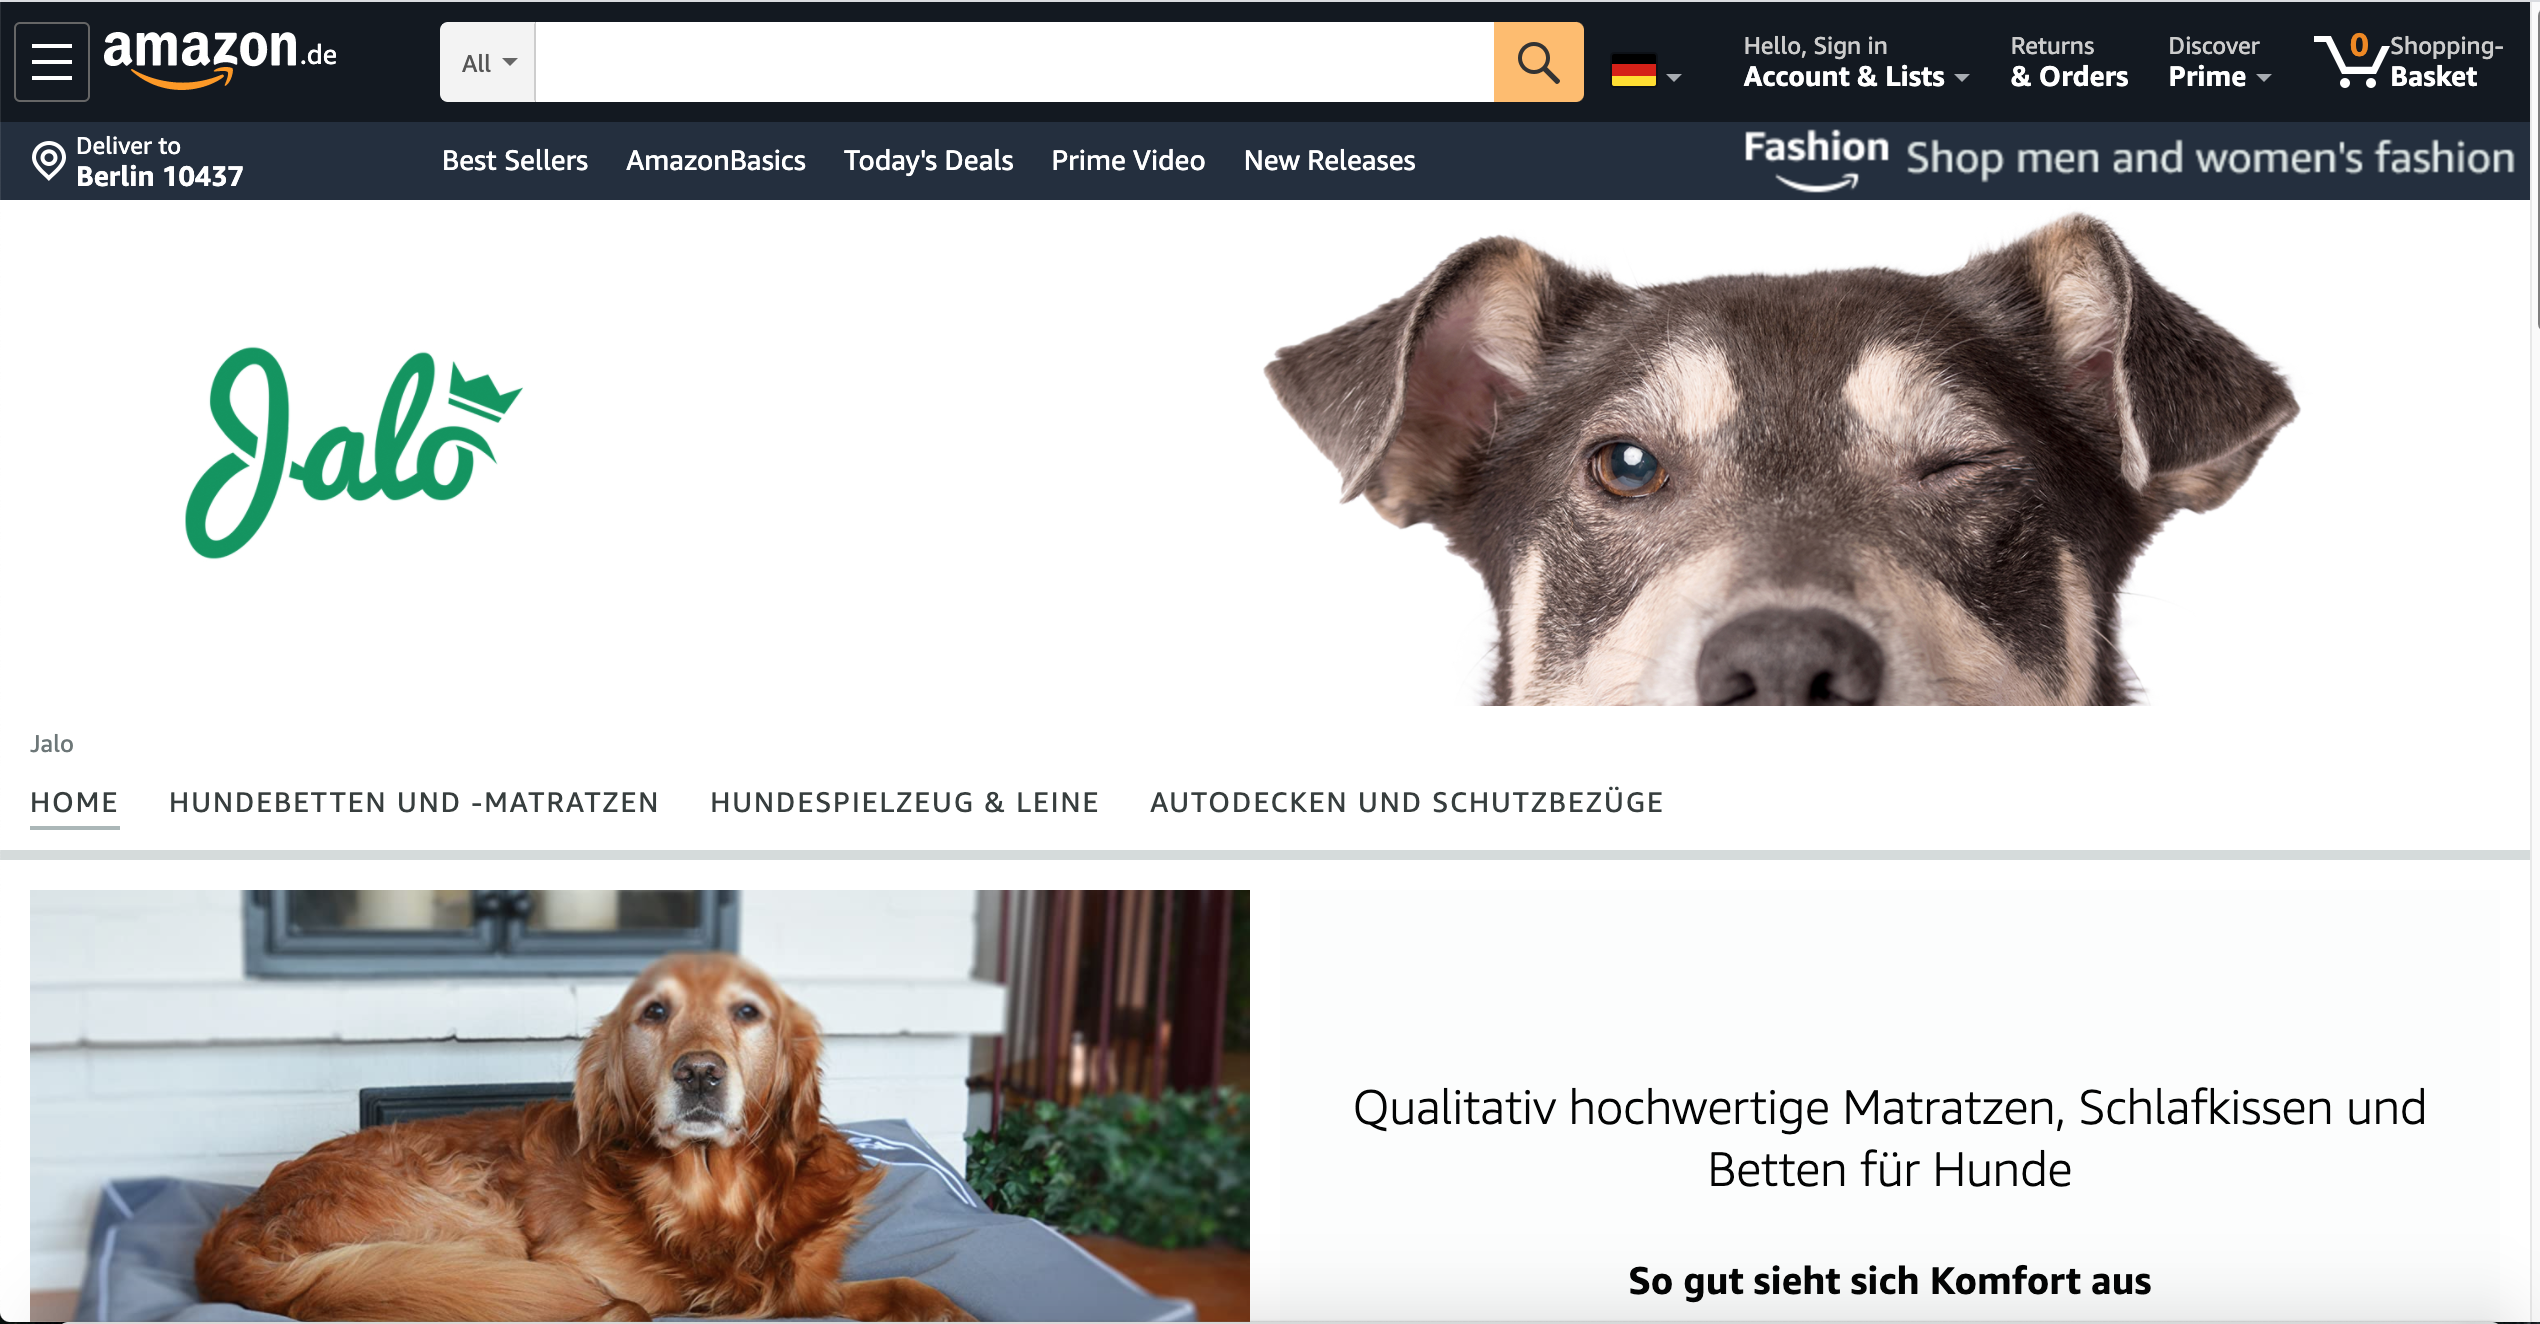 Jalo brand page header in amazon store